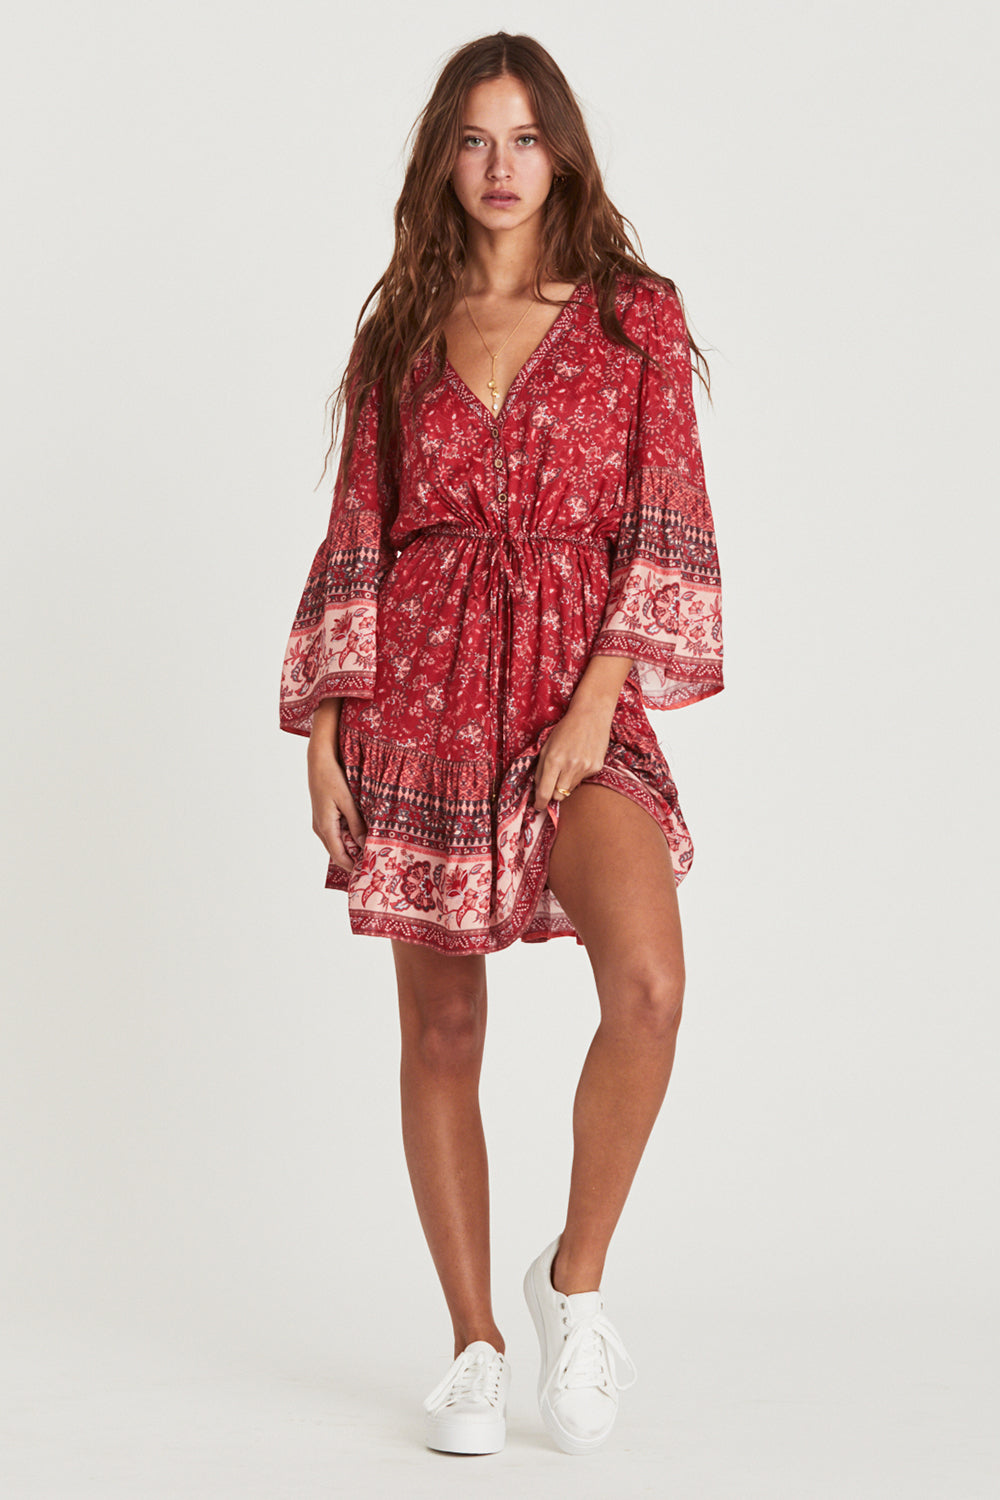 Amelie Mini Dress in Cassis